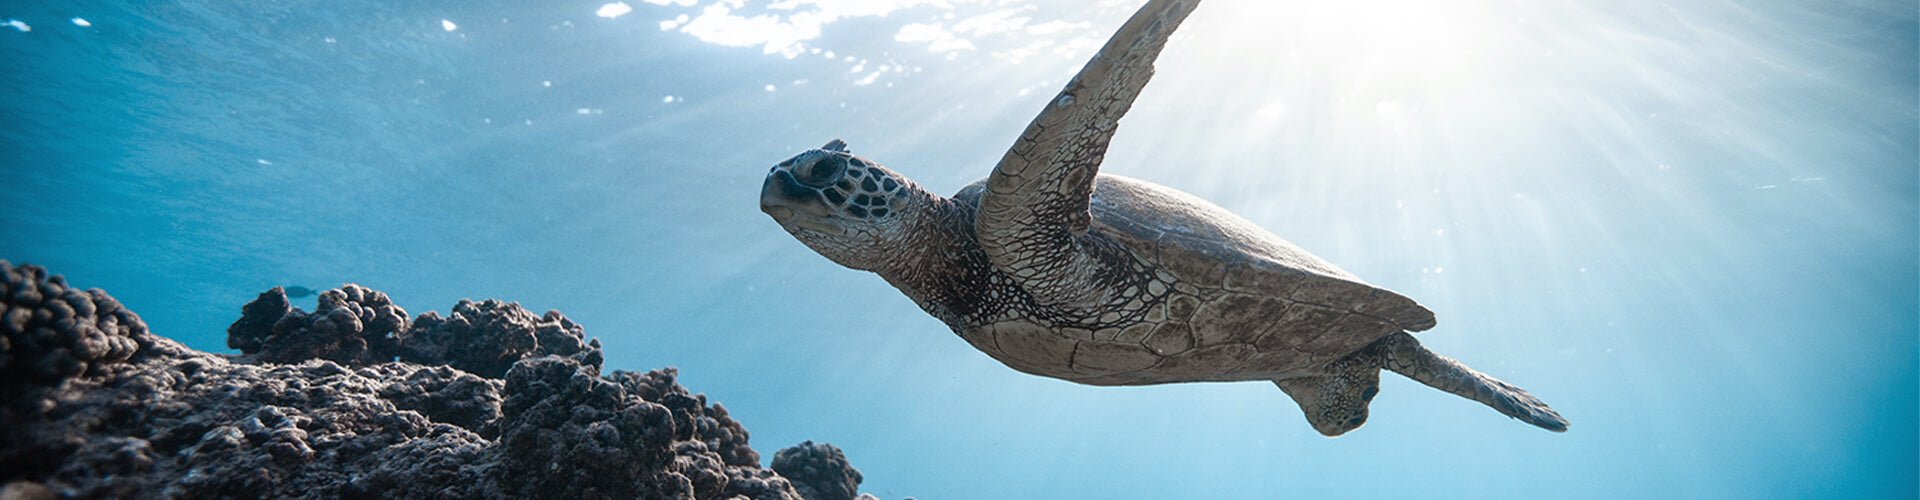 Green Sea Turtle gliding over coral reef. Plastic Free July